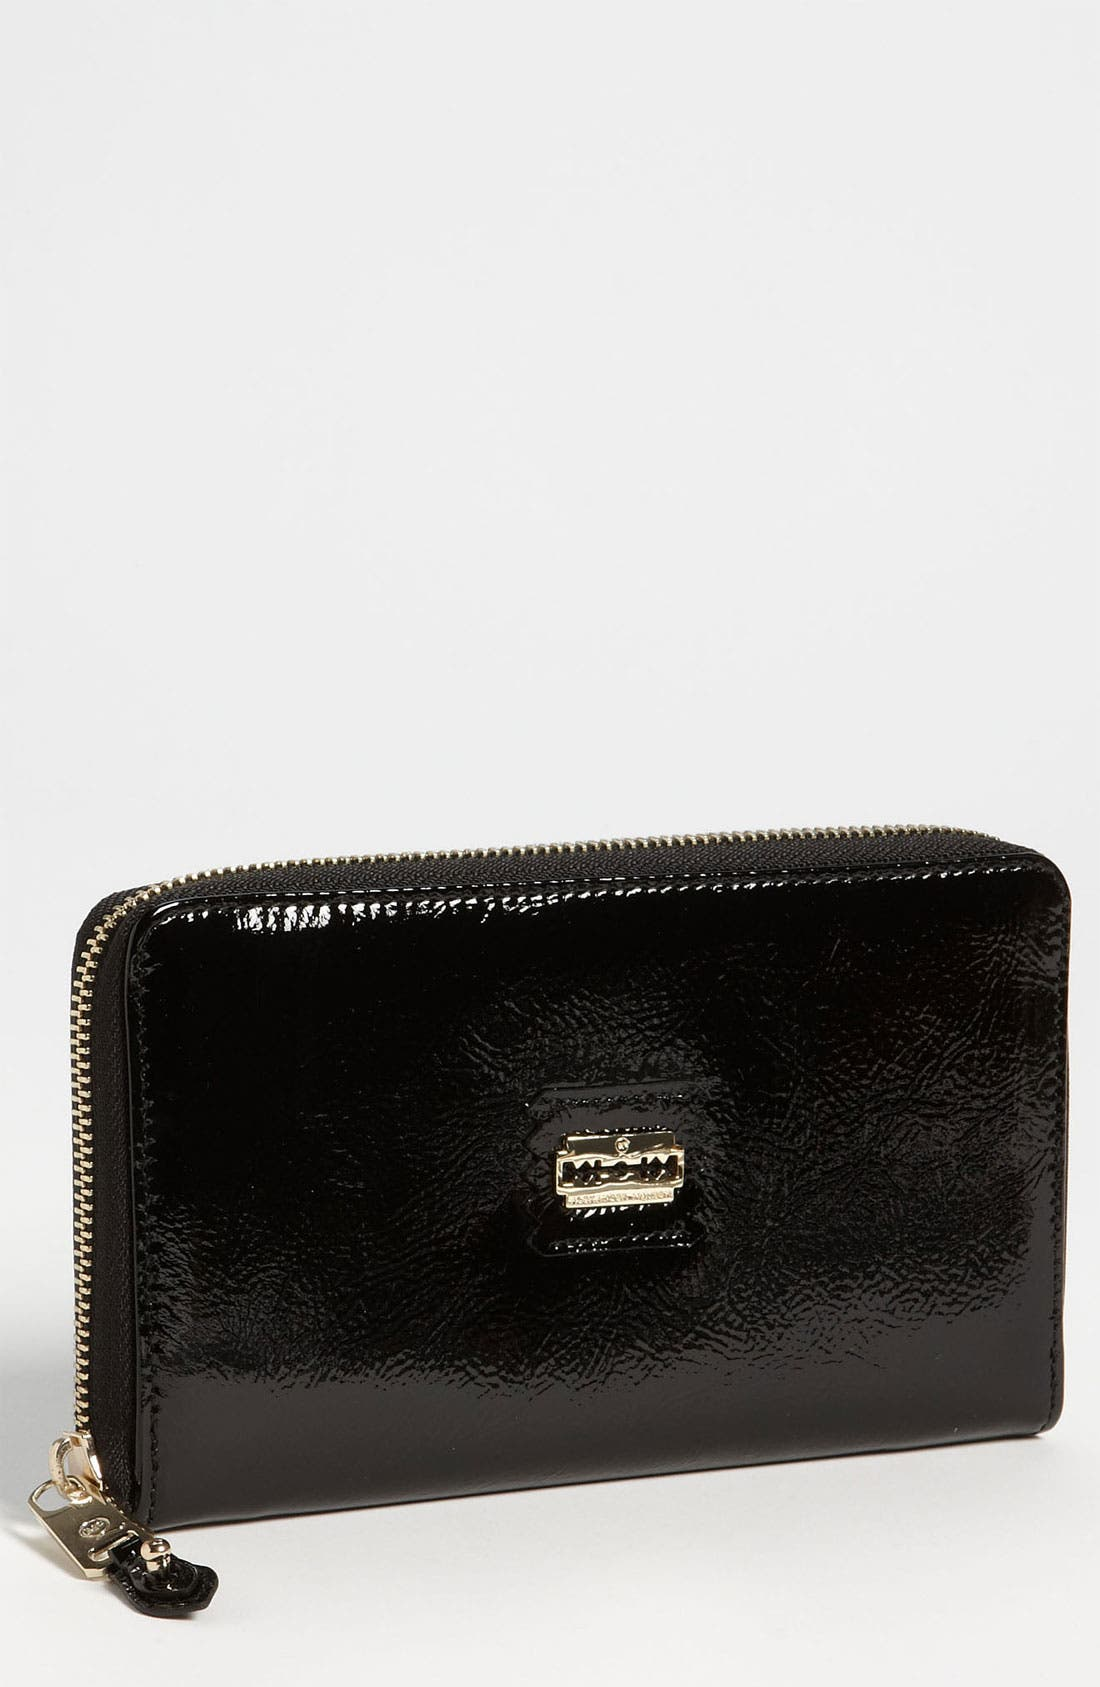 Alternate Image 1 Selected - McQ by Alexander McQueen 'East West' Zip Around Wallet